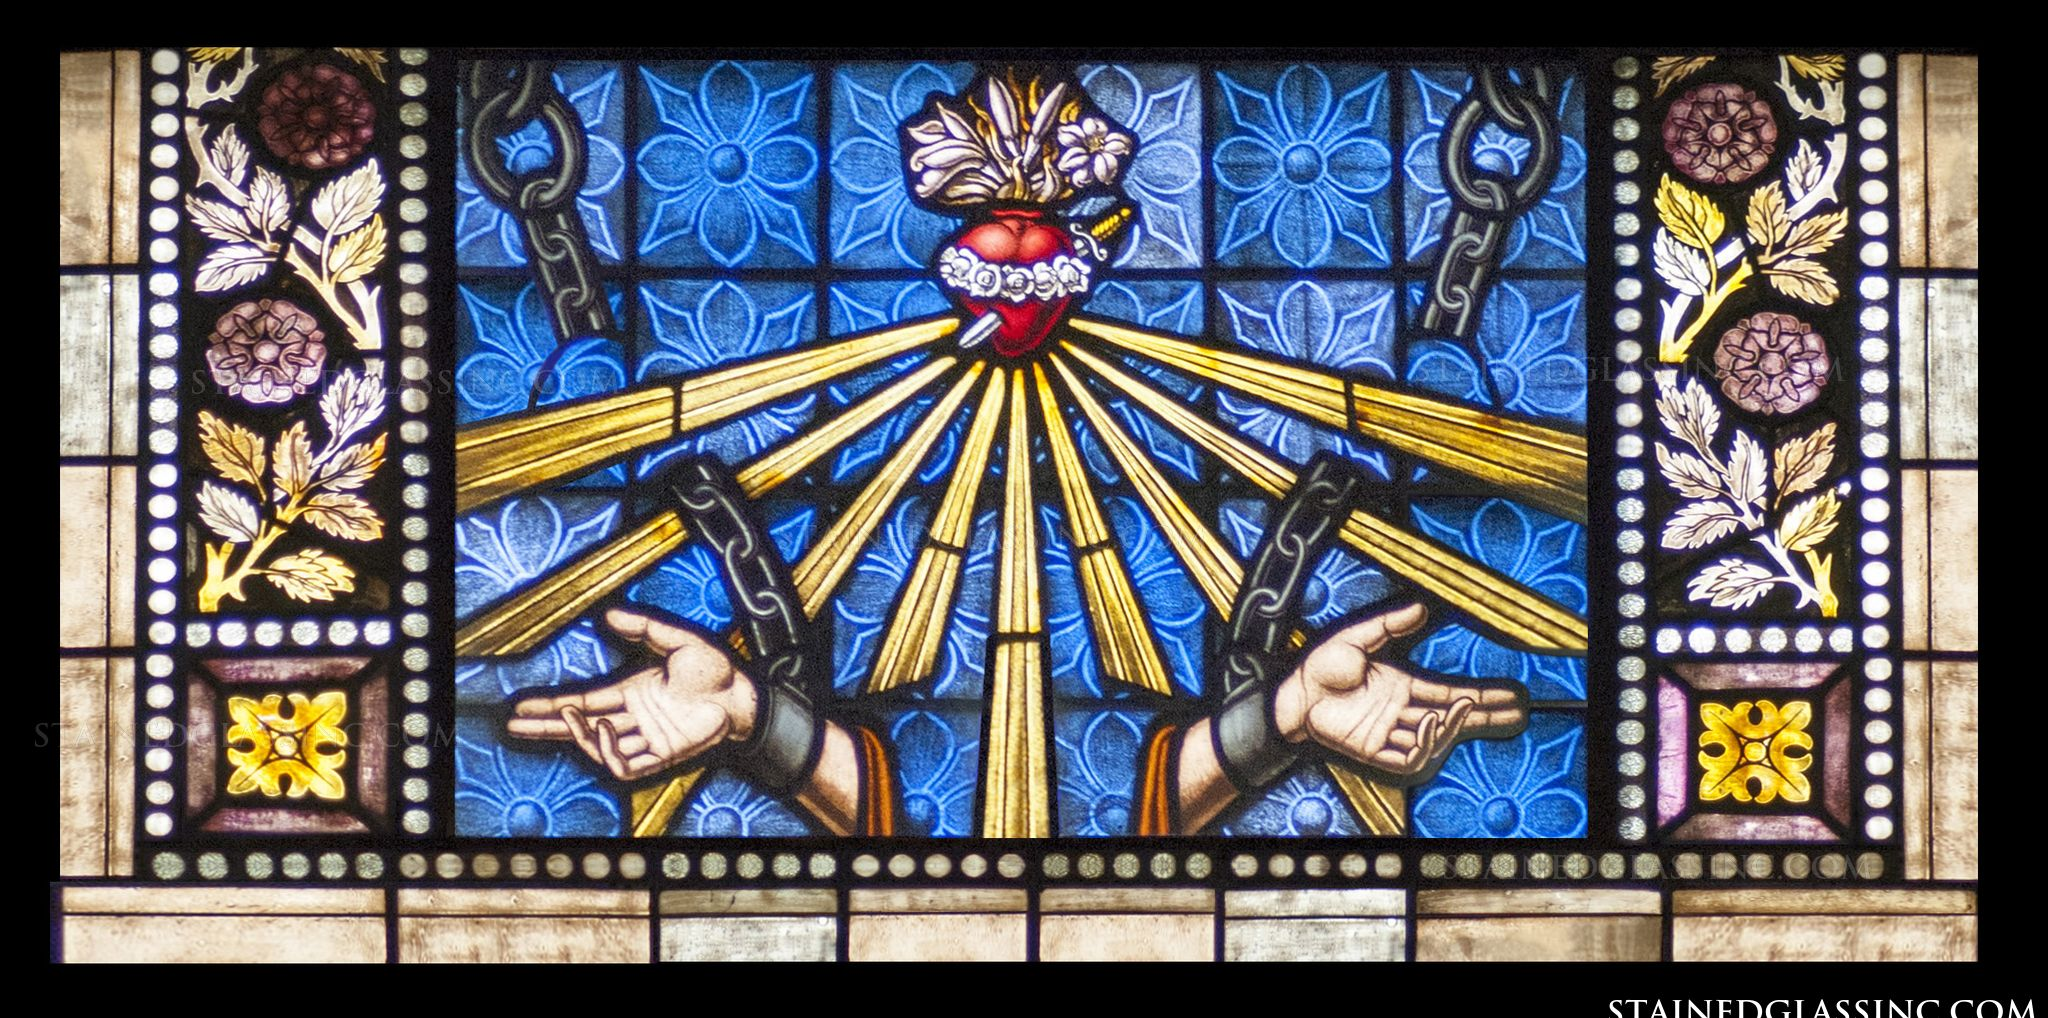 Open hands stained glass window this religious stained glass window insert provides a detailed frame full of color to surround a deeply symbolic image of welcoming hands rays of light biocorpaavc Gallery